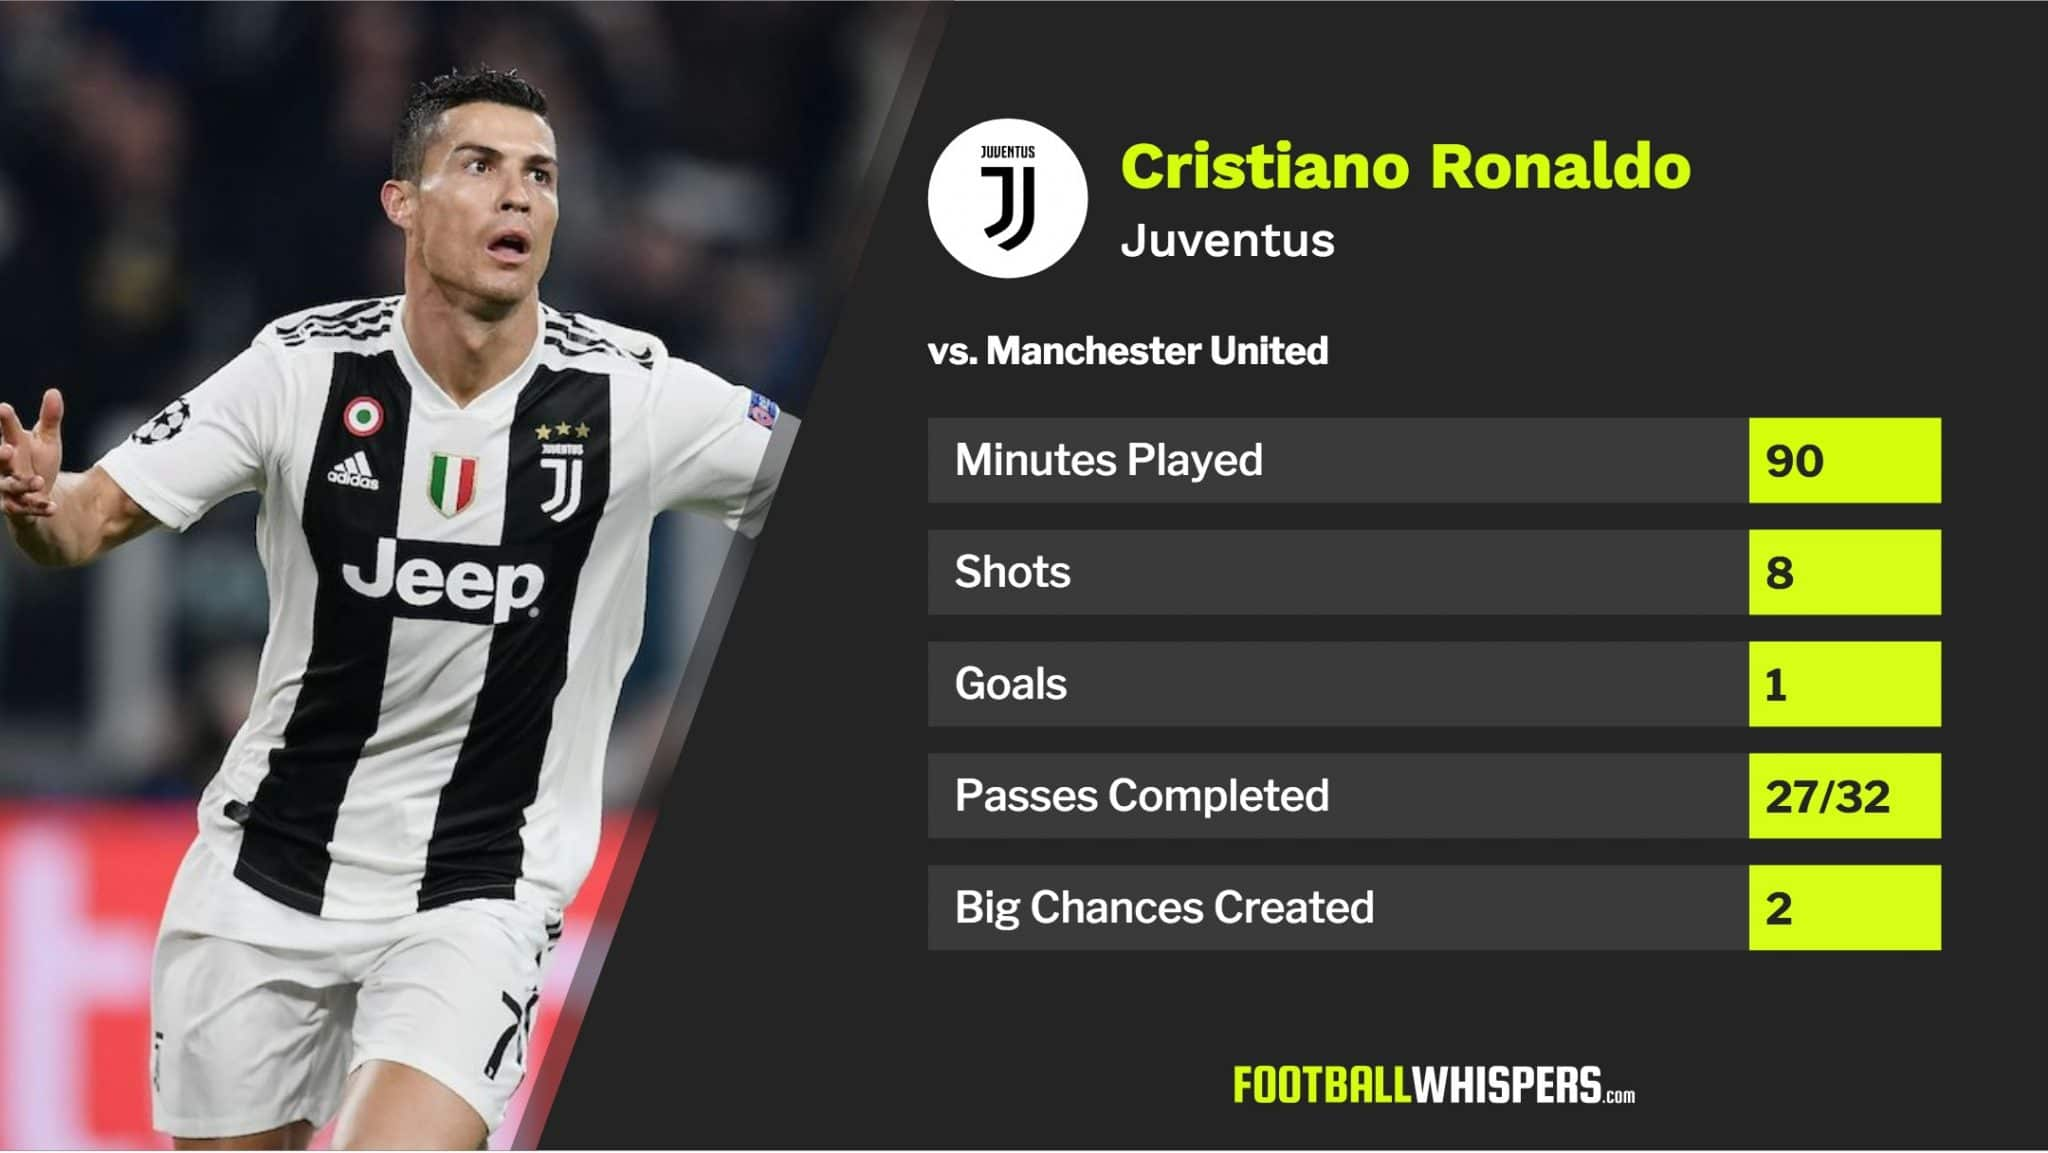 Cristiano Ronaldo's stats for Juventus vs. Manchester United